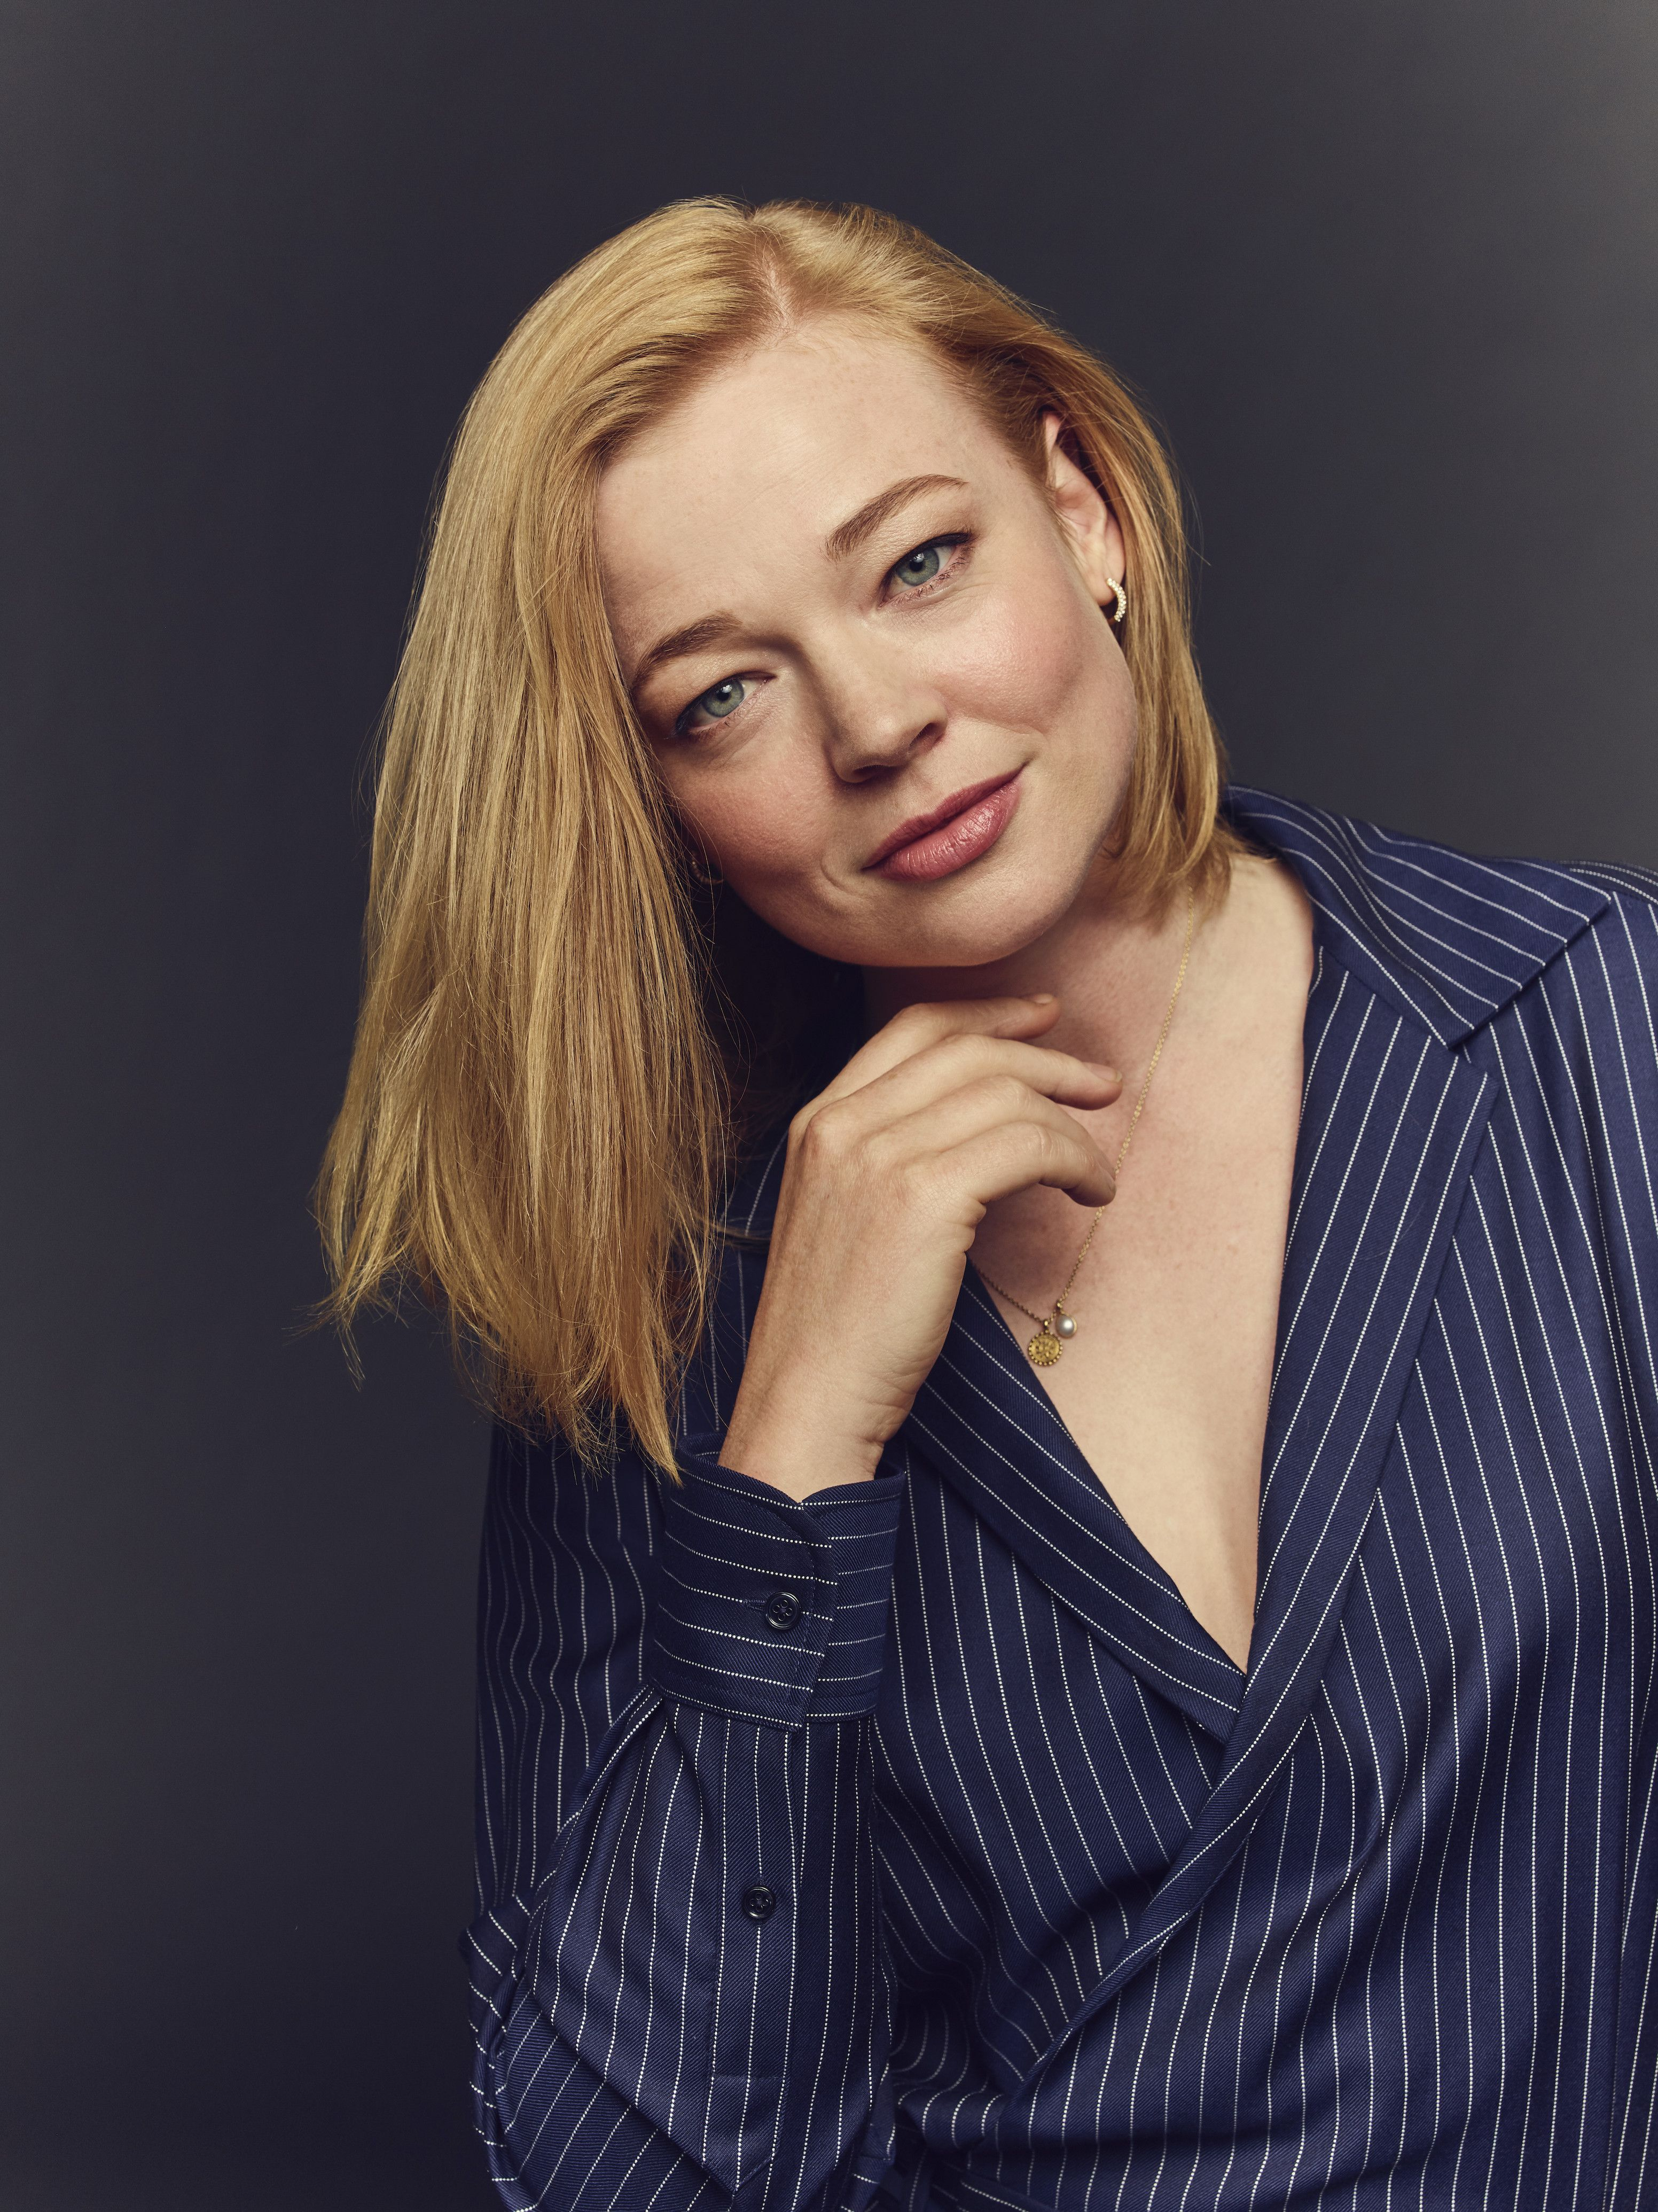 sarah snook heightsarah snook black mirror, sarah snook wiki, sarah snook movies, sarah snook theatre, sarah snook age, sarah snook filmography, sarah snook height, sarah snook gif, sarah snook movies and tv shows, sarah snook instagram, sarah snook angus mcdonald, sarah snook facebook, sarah snook, sarah snook husband, sarah snook imdb, sarah snook succession, sarah snook predestination, sarah snook emma stone, sarah snook twitter, sarah snook height weight